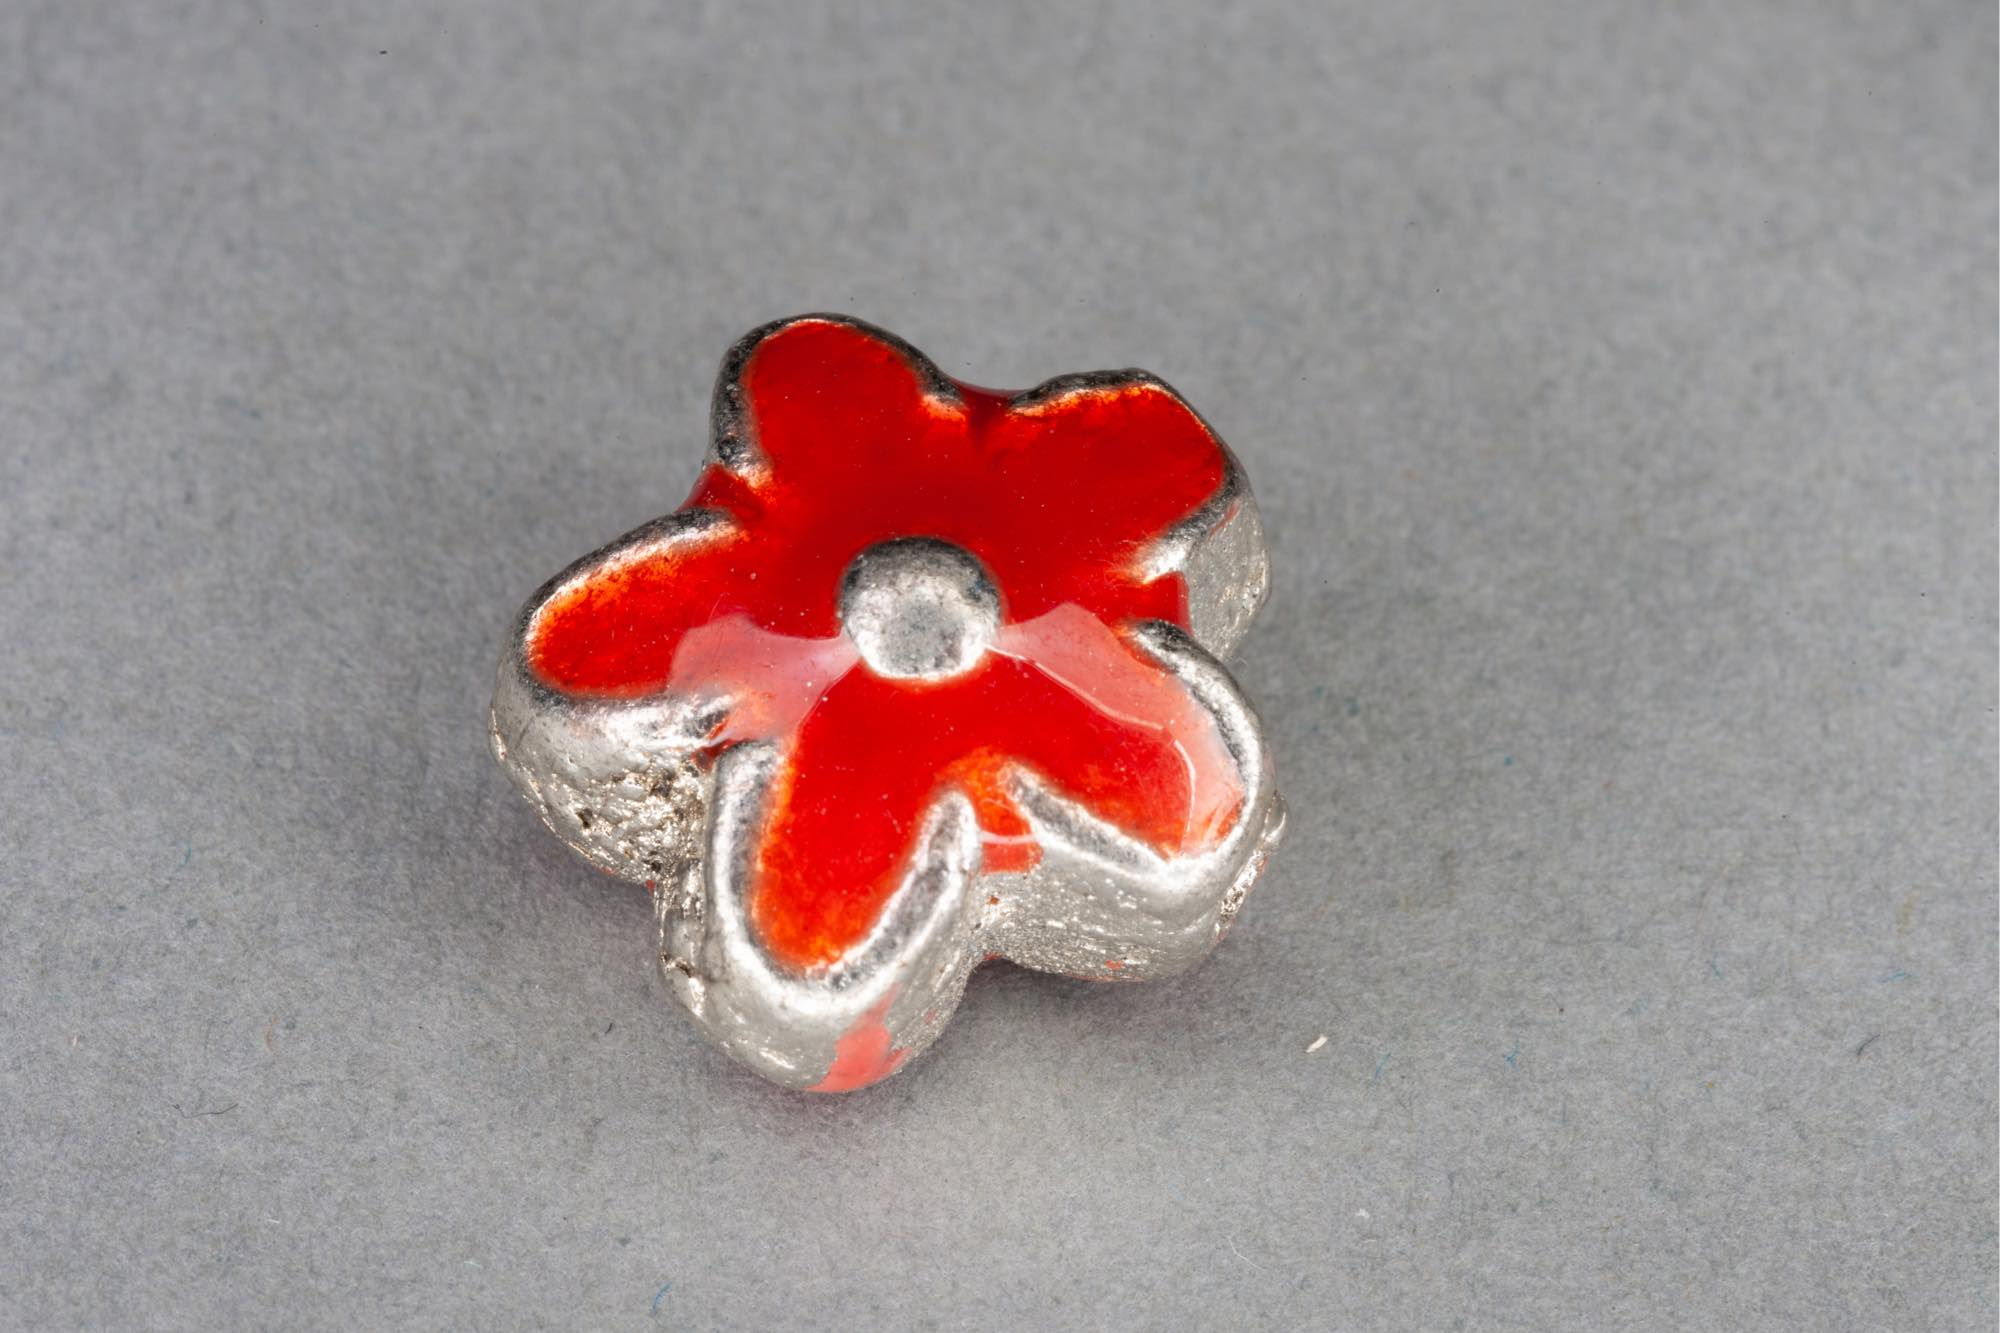 Silver Plated Metal Flower Bead With Red Enamel Effect 14x7mm, 1.2mm hole